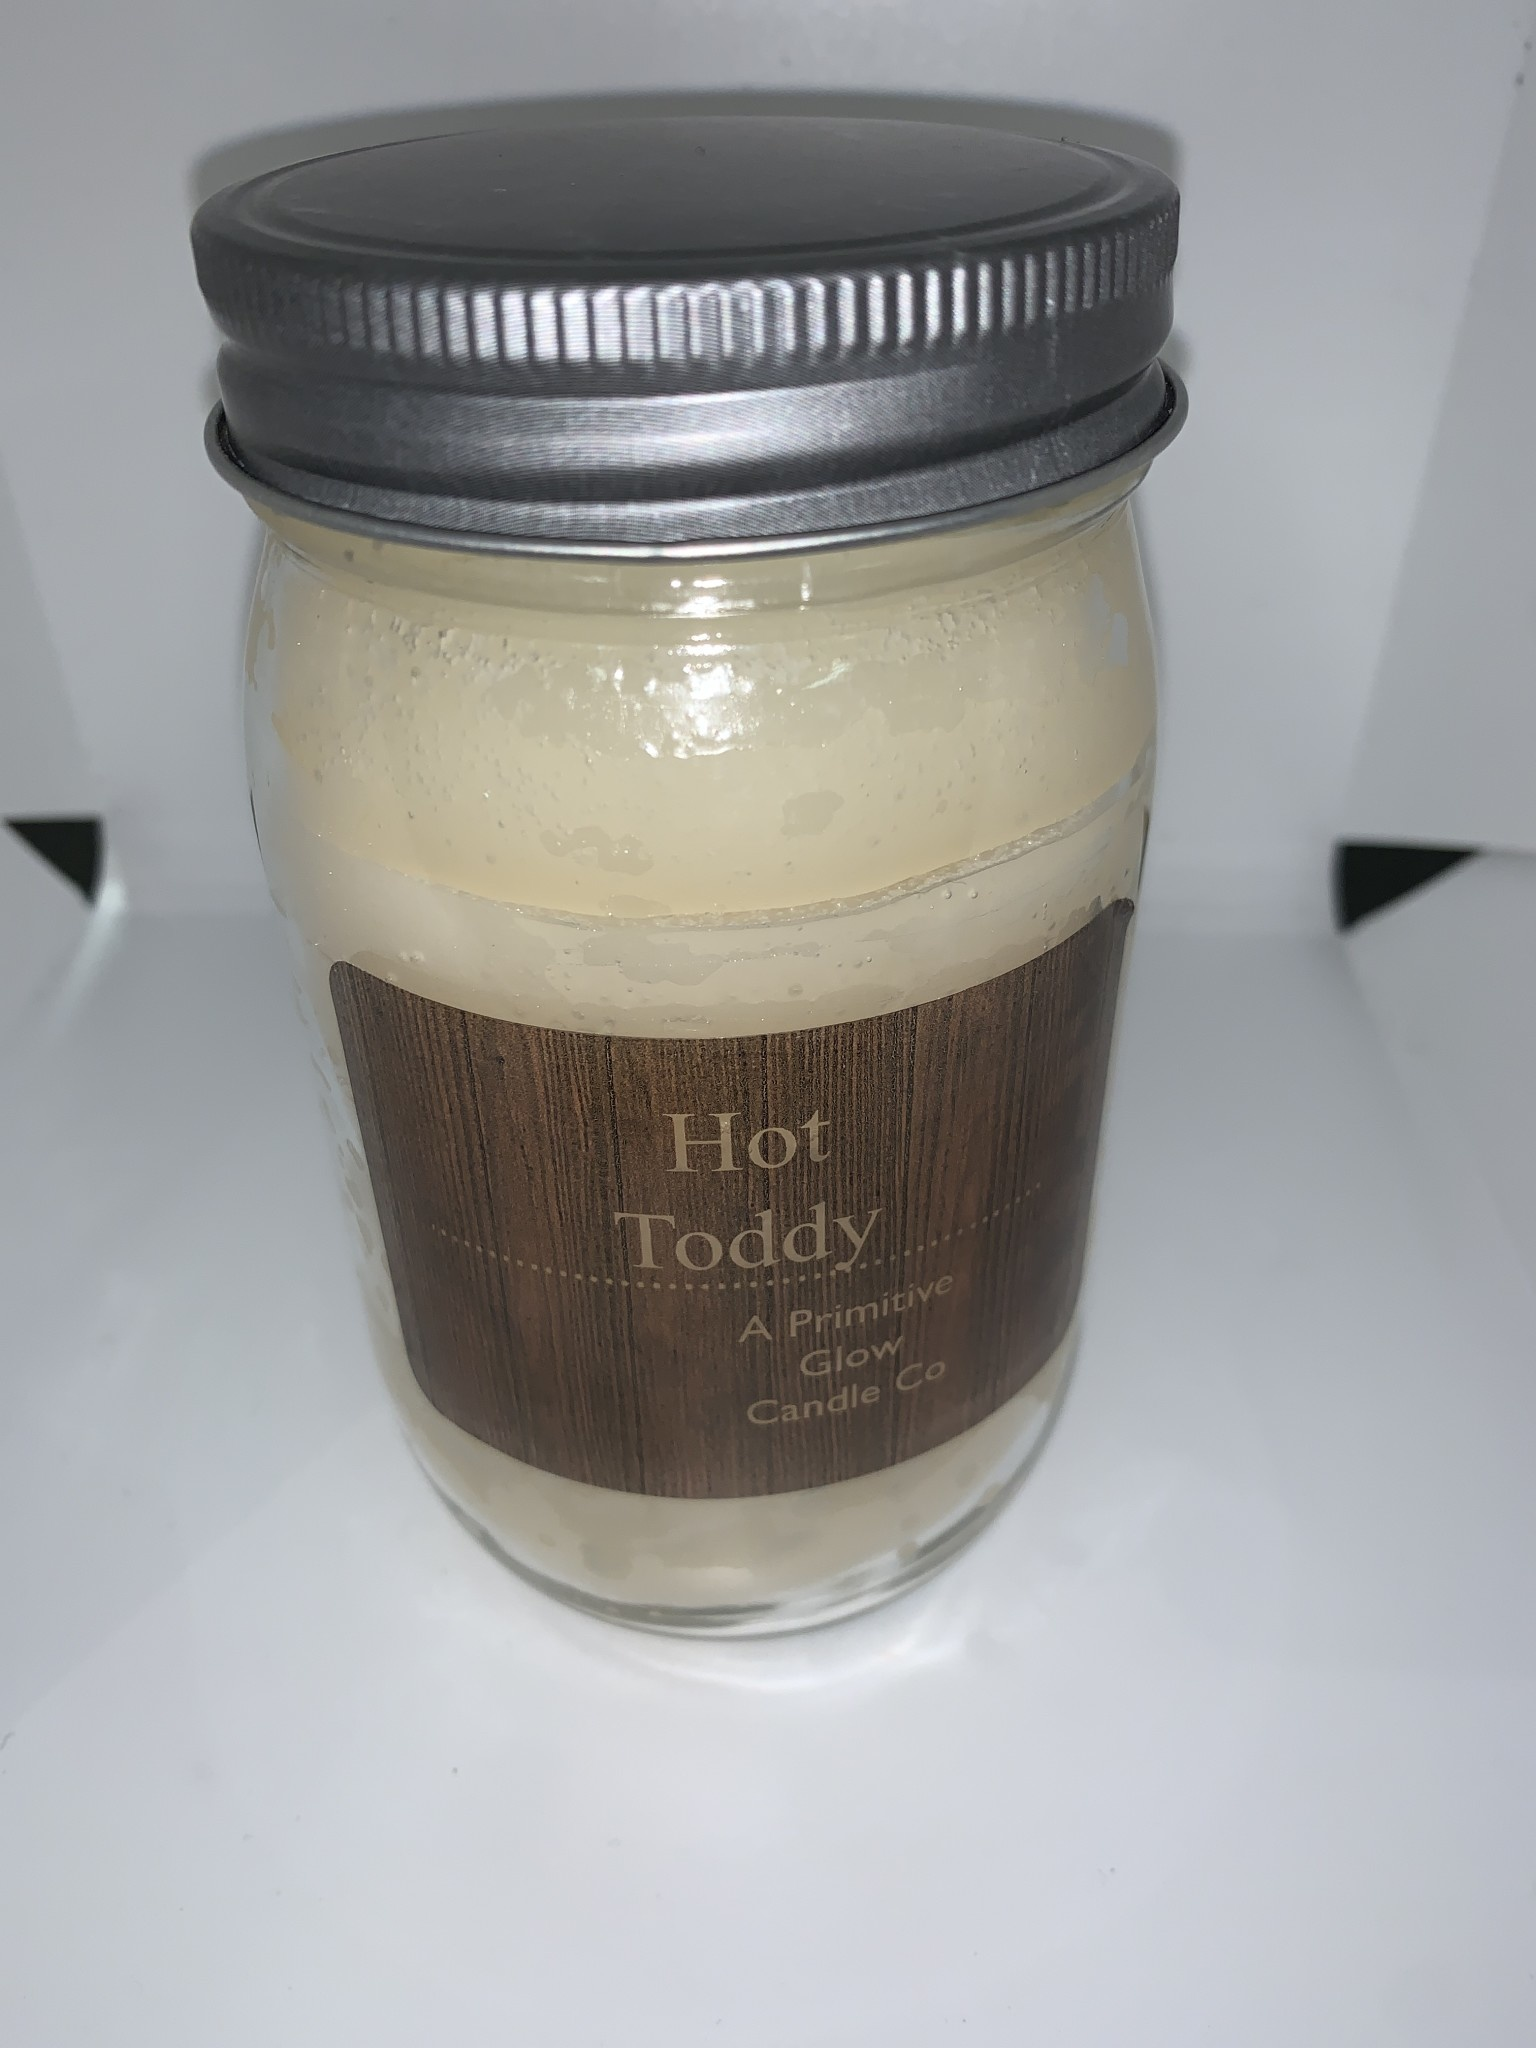 A PRIMITIVE CANDLE CO Hot Toddy  Candle 16oz